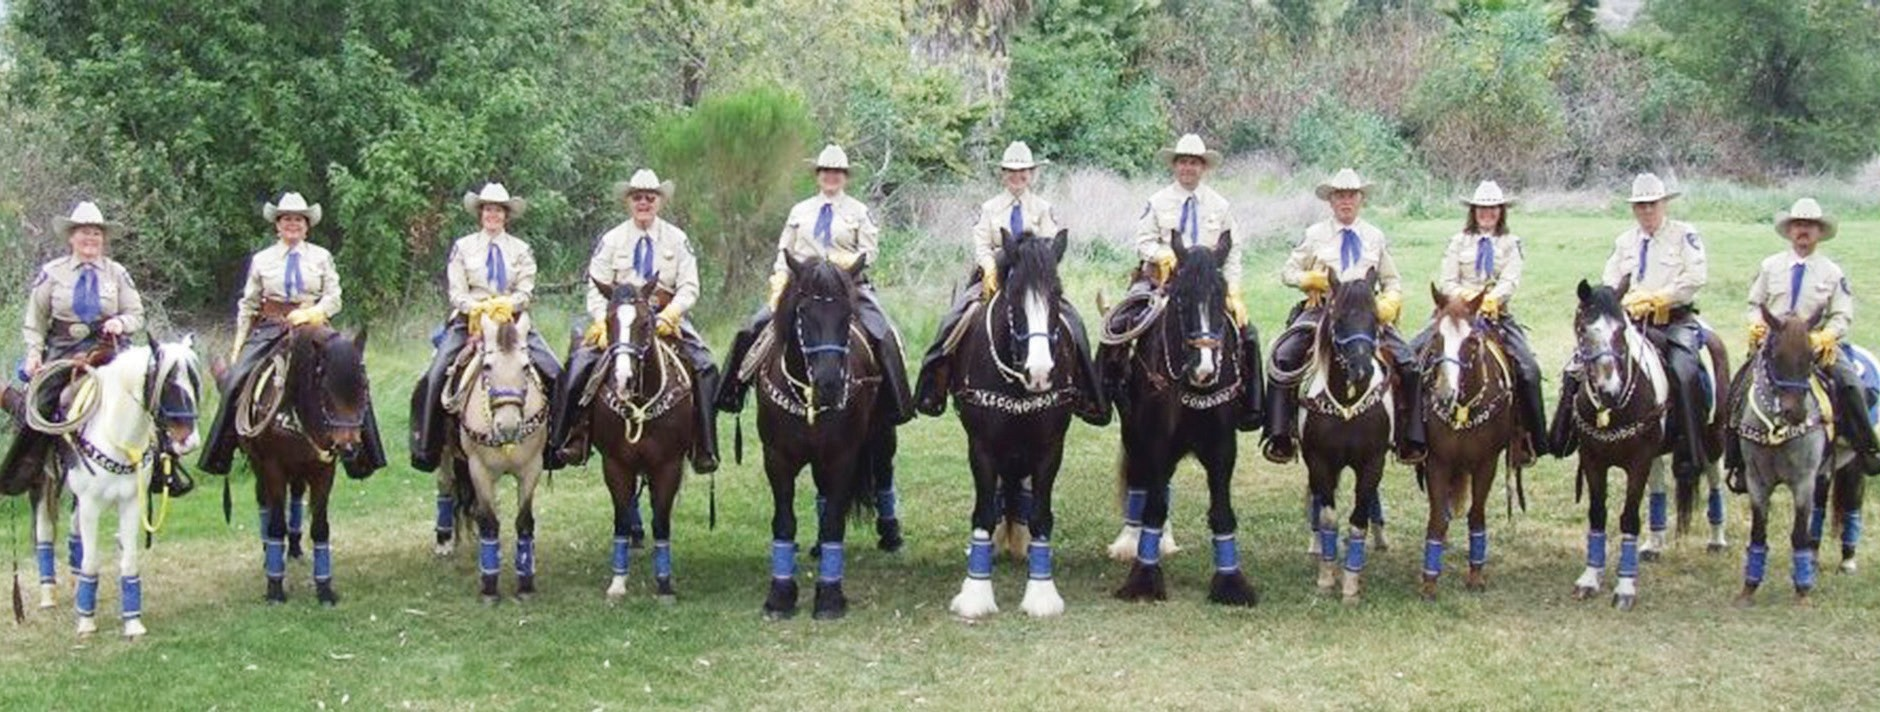 The Escondido Mounted Posse is an equestrian group that participates in various parades throughout San Diego county. Once a law enforcement group, the Posse is now made up entirely of volunteers who share a love for horse riding.